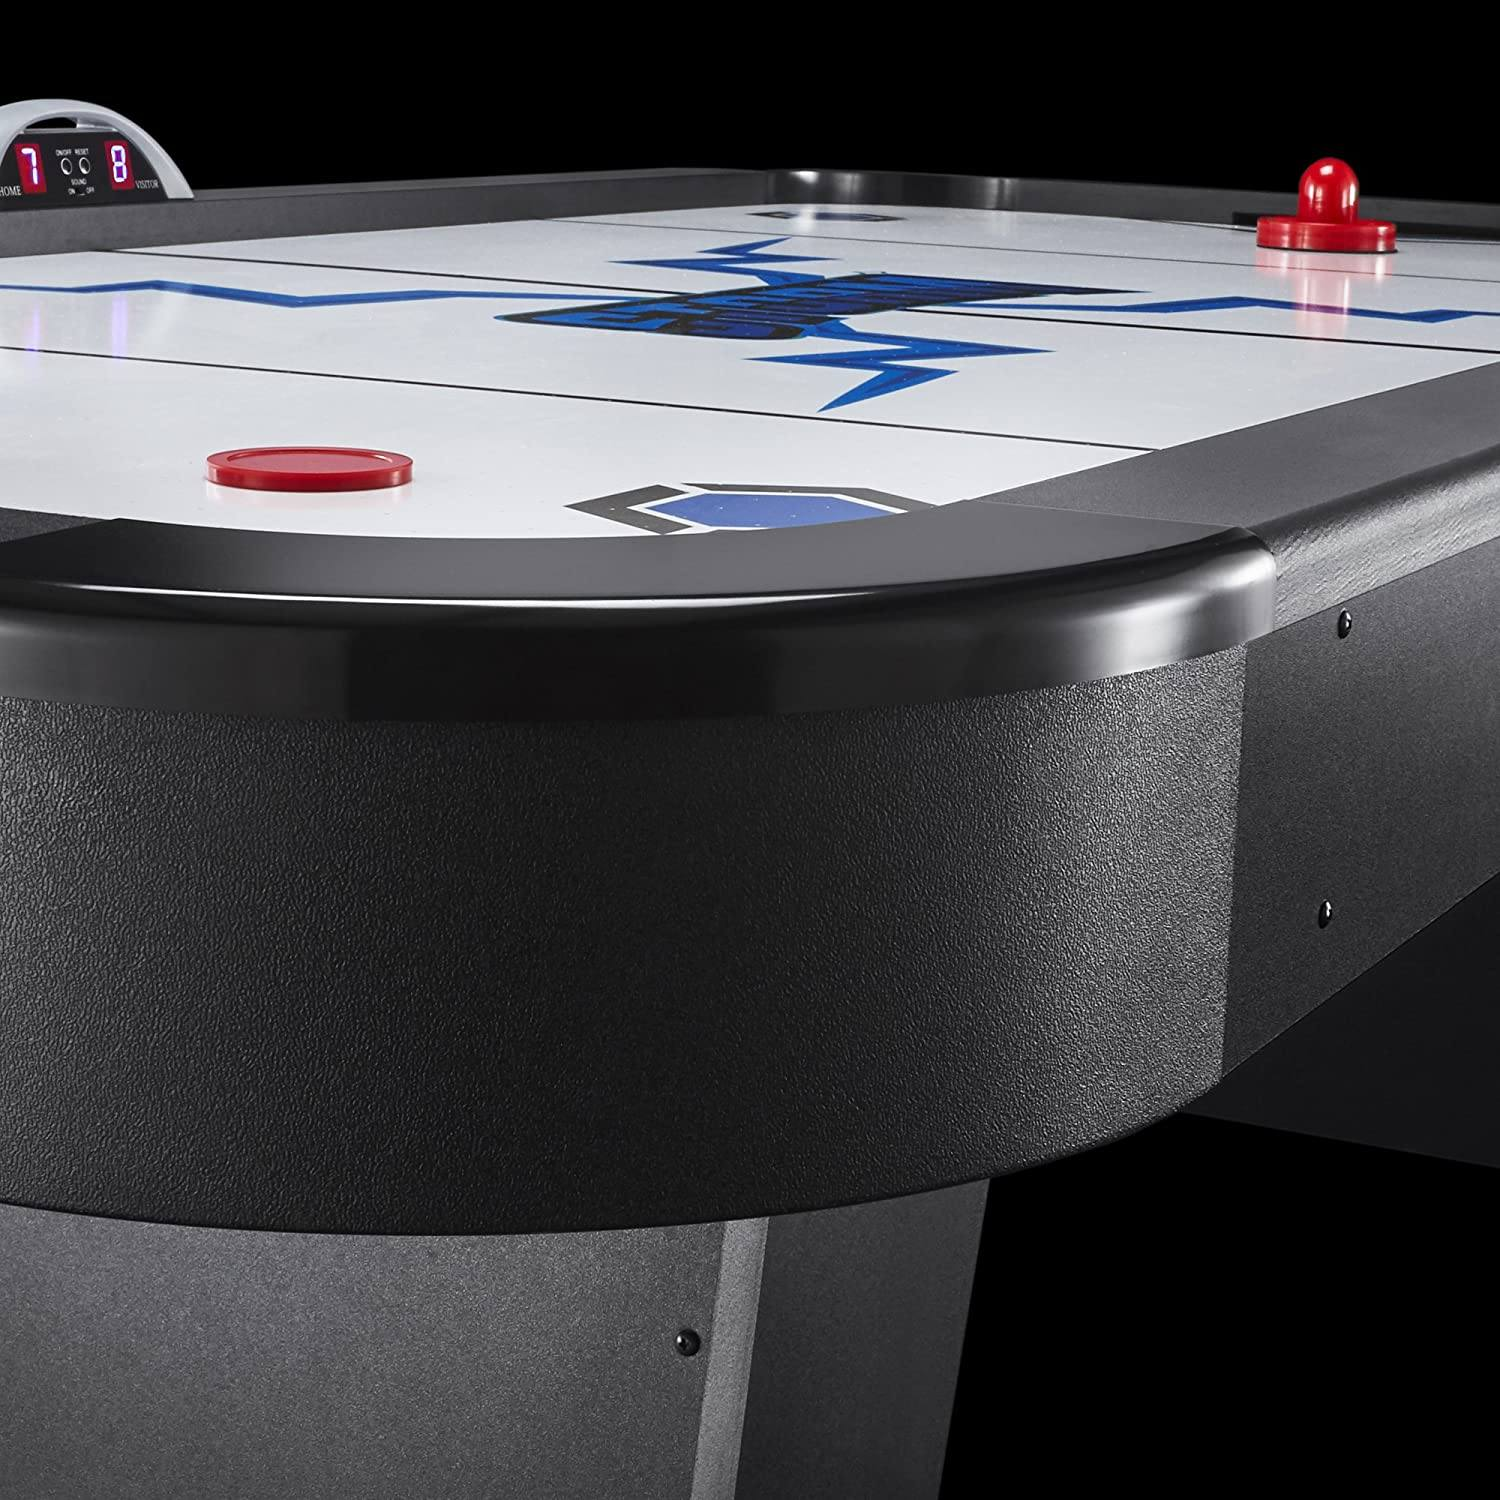 Fat Cat Storm MMXI 7-Foot Air Hockey Game Table Features